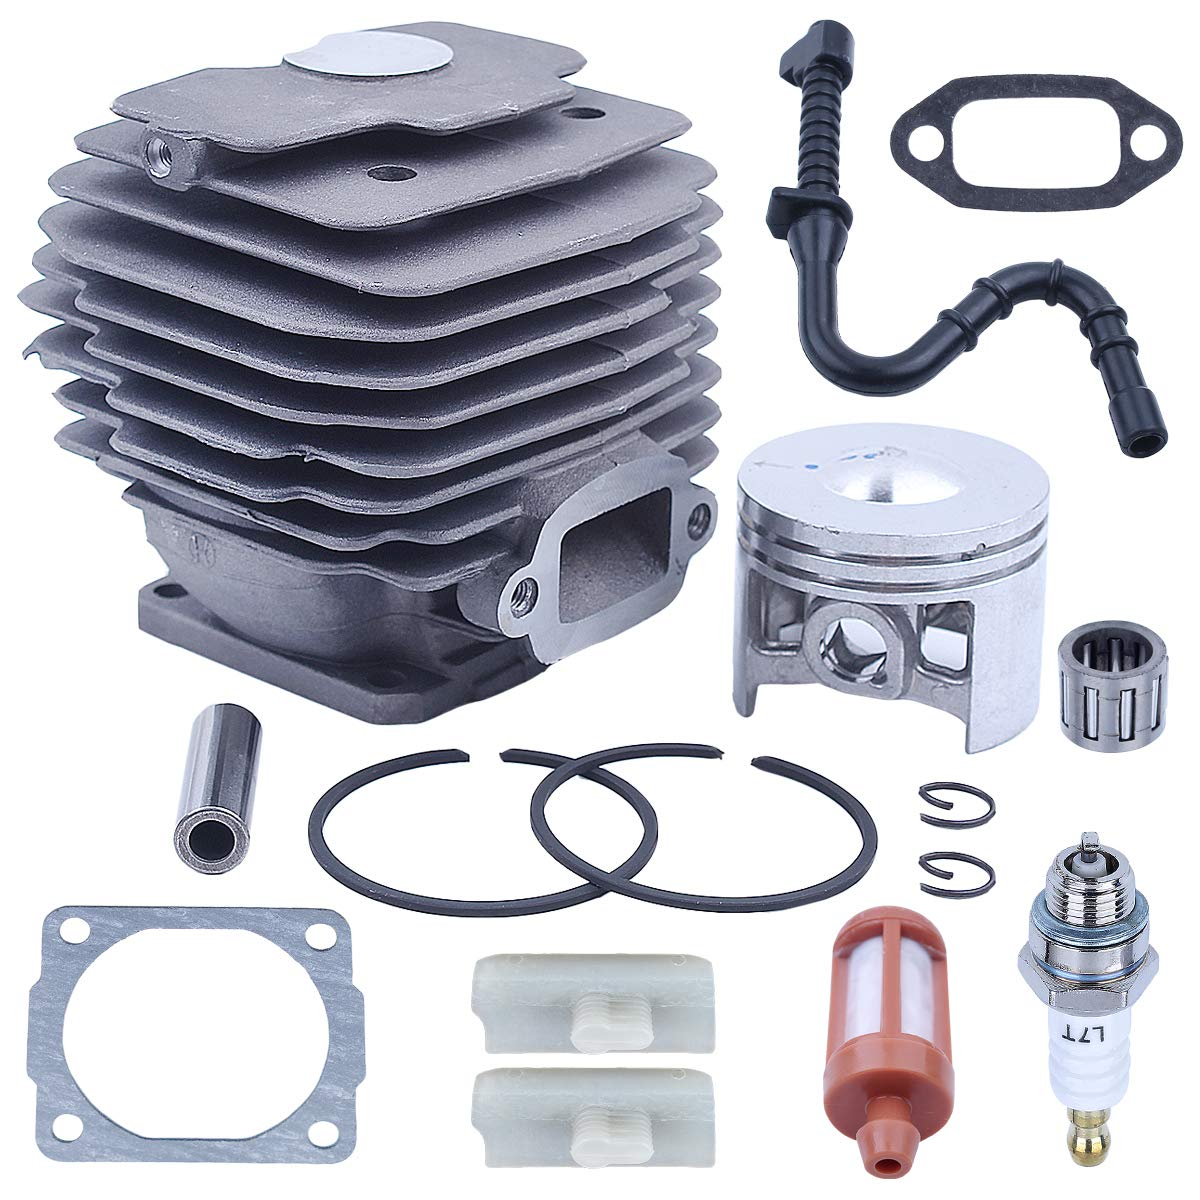 46mm Chainsaw Super AV WB Cylinder Piston Gasket Kit For Stihl 028 with Fuel Line Fuel Filter Spark Plug Cylinder Gasket Muffler Gasket Needle Bearing Bar Stripe Replacement parts for 1118 020 1203 by Adefol